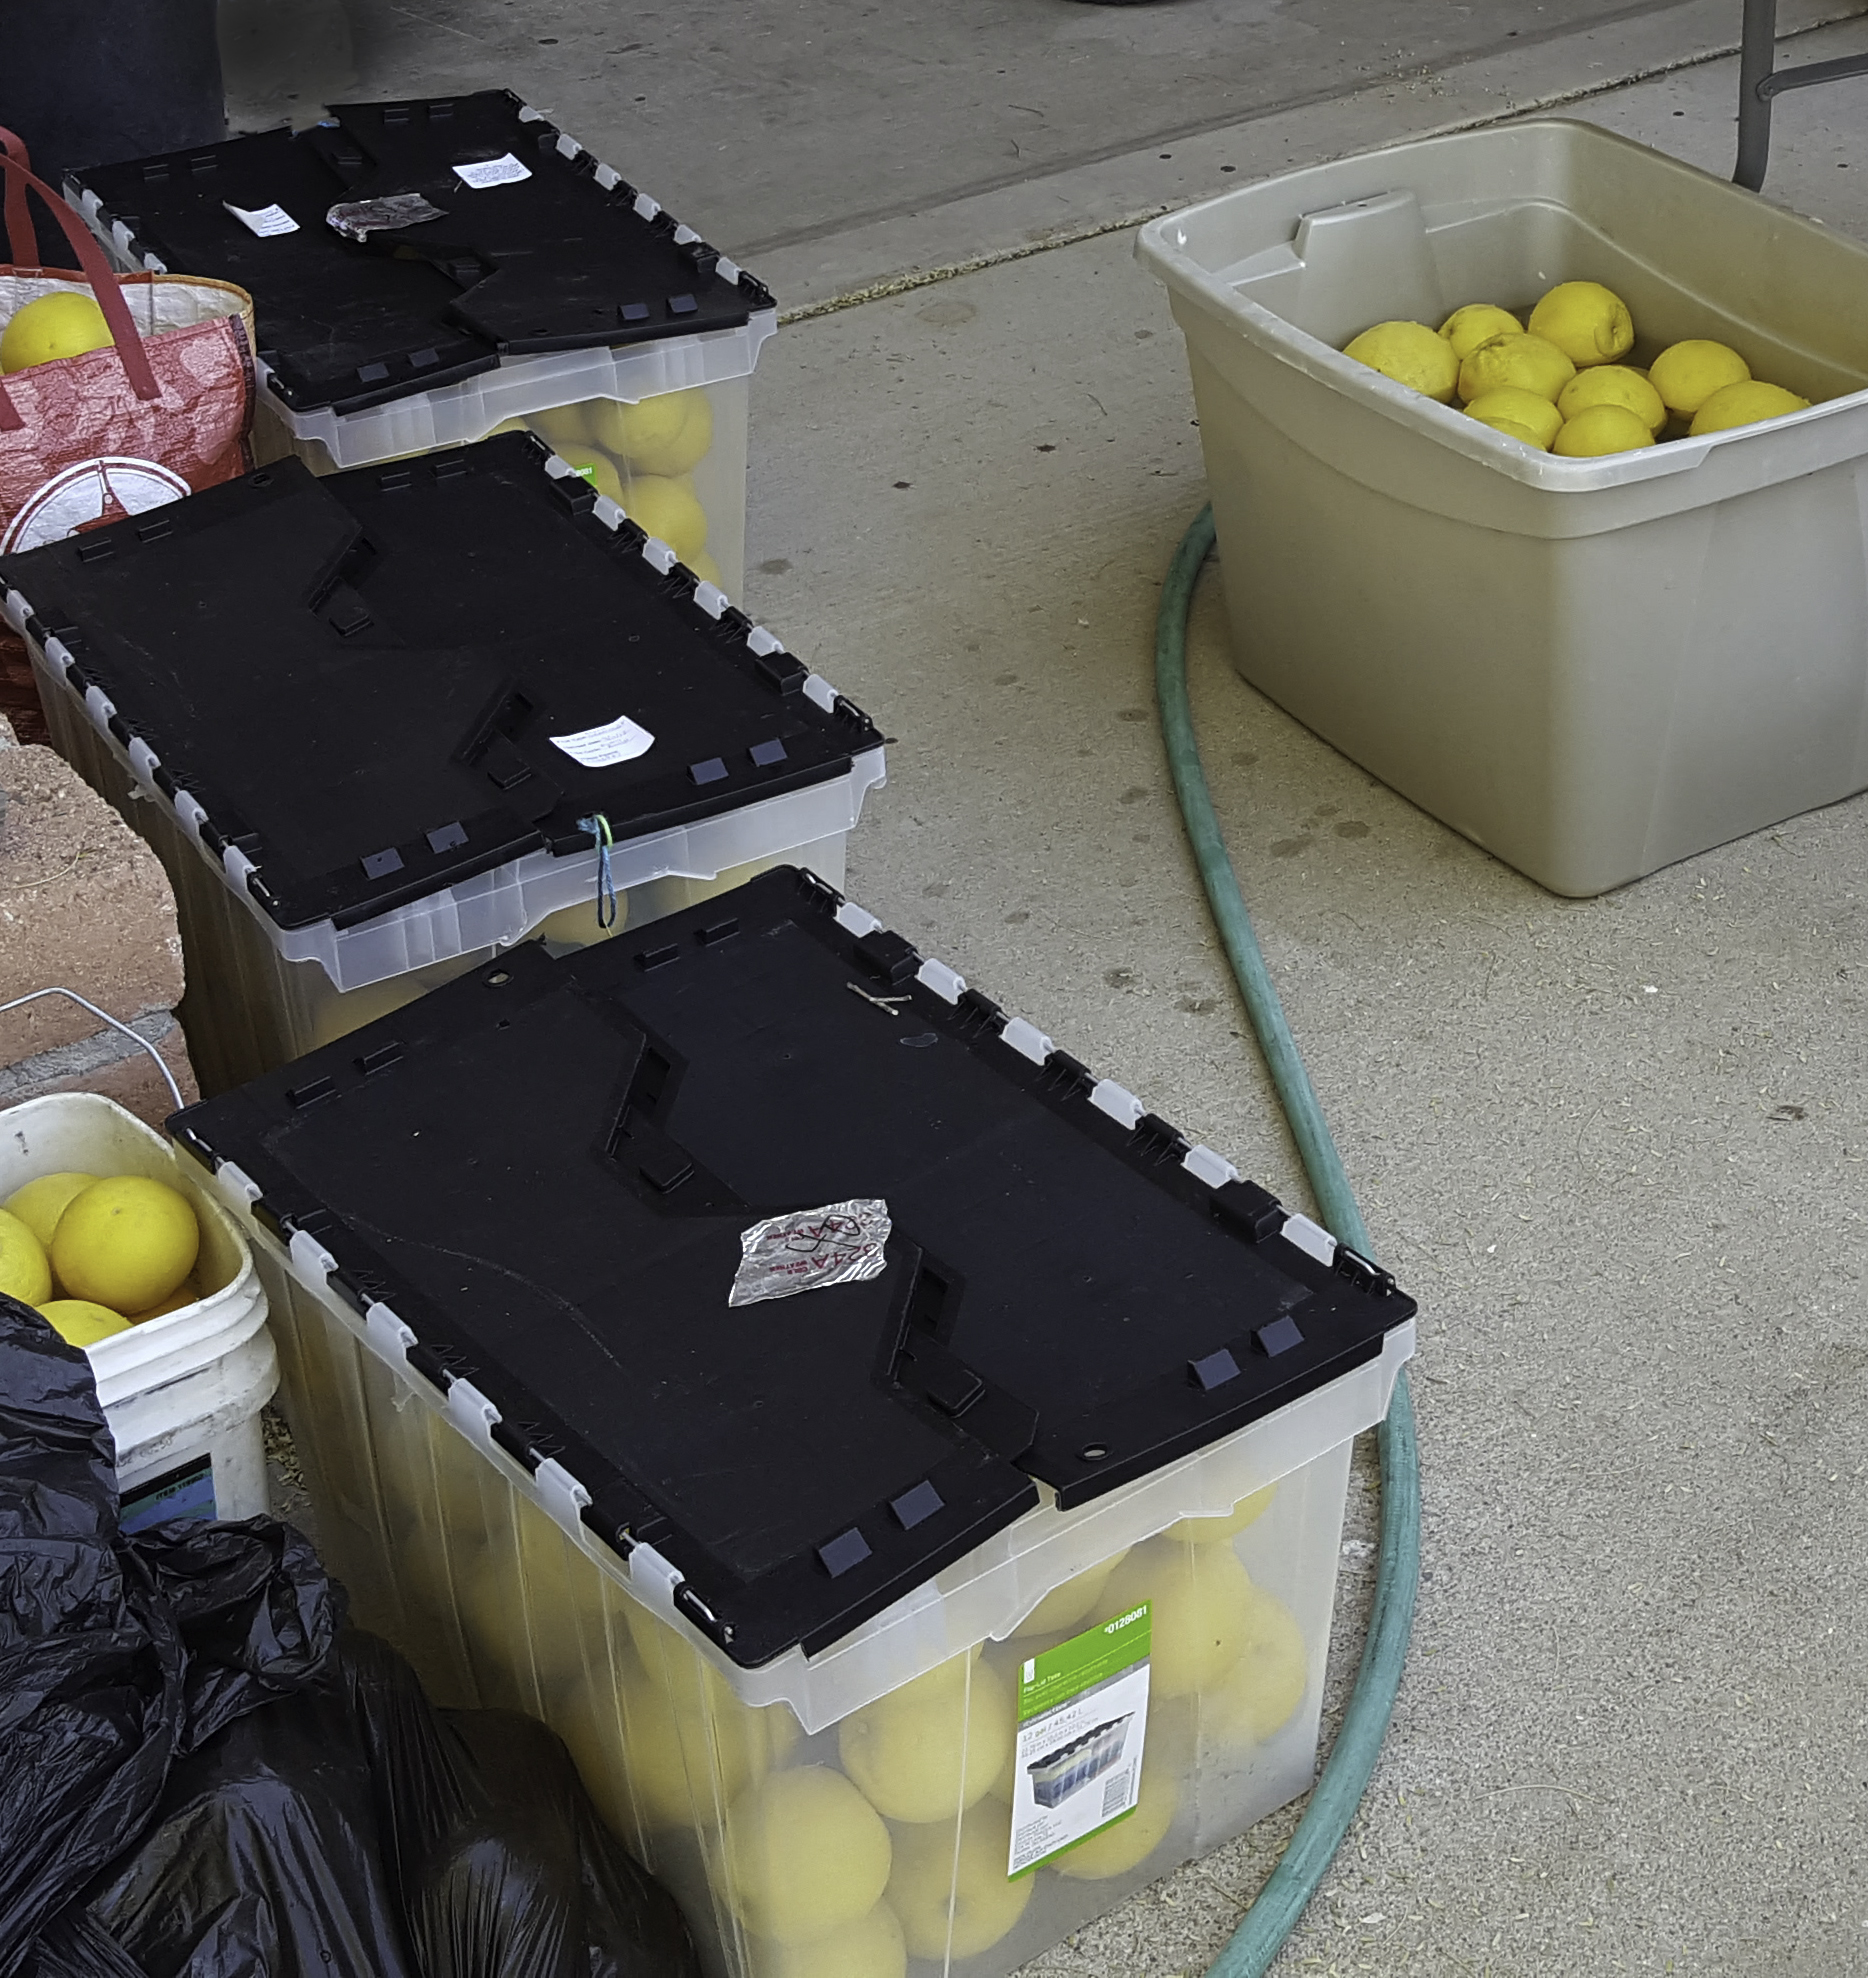 Before the grapefruits can be transported, they must be thoroughly washed.